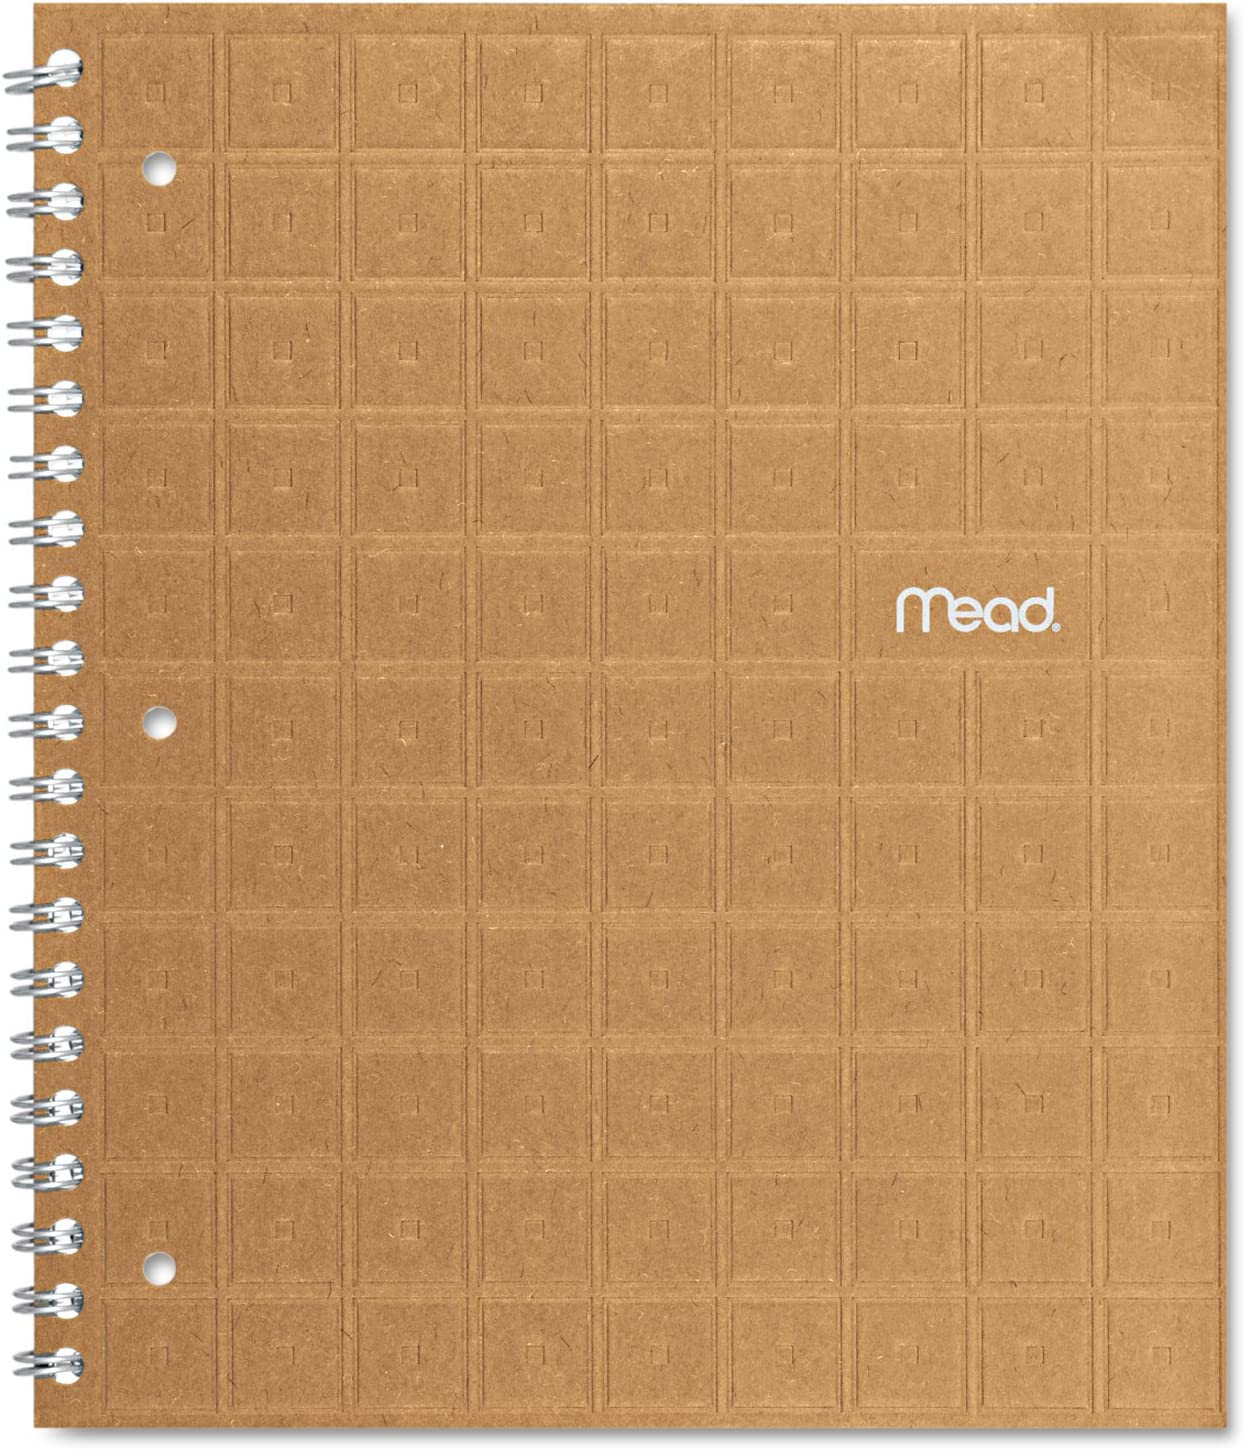 11 x 8 1//2 80 Sheets Perforated College Ruled Assorted Mead 06594 Recycled Notebook